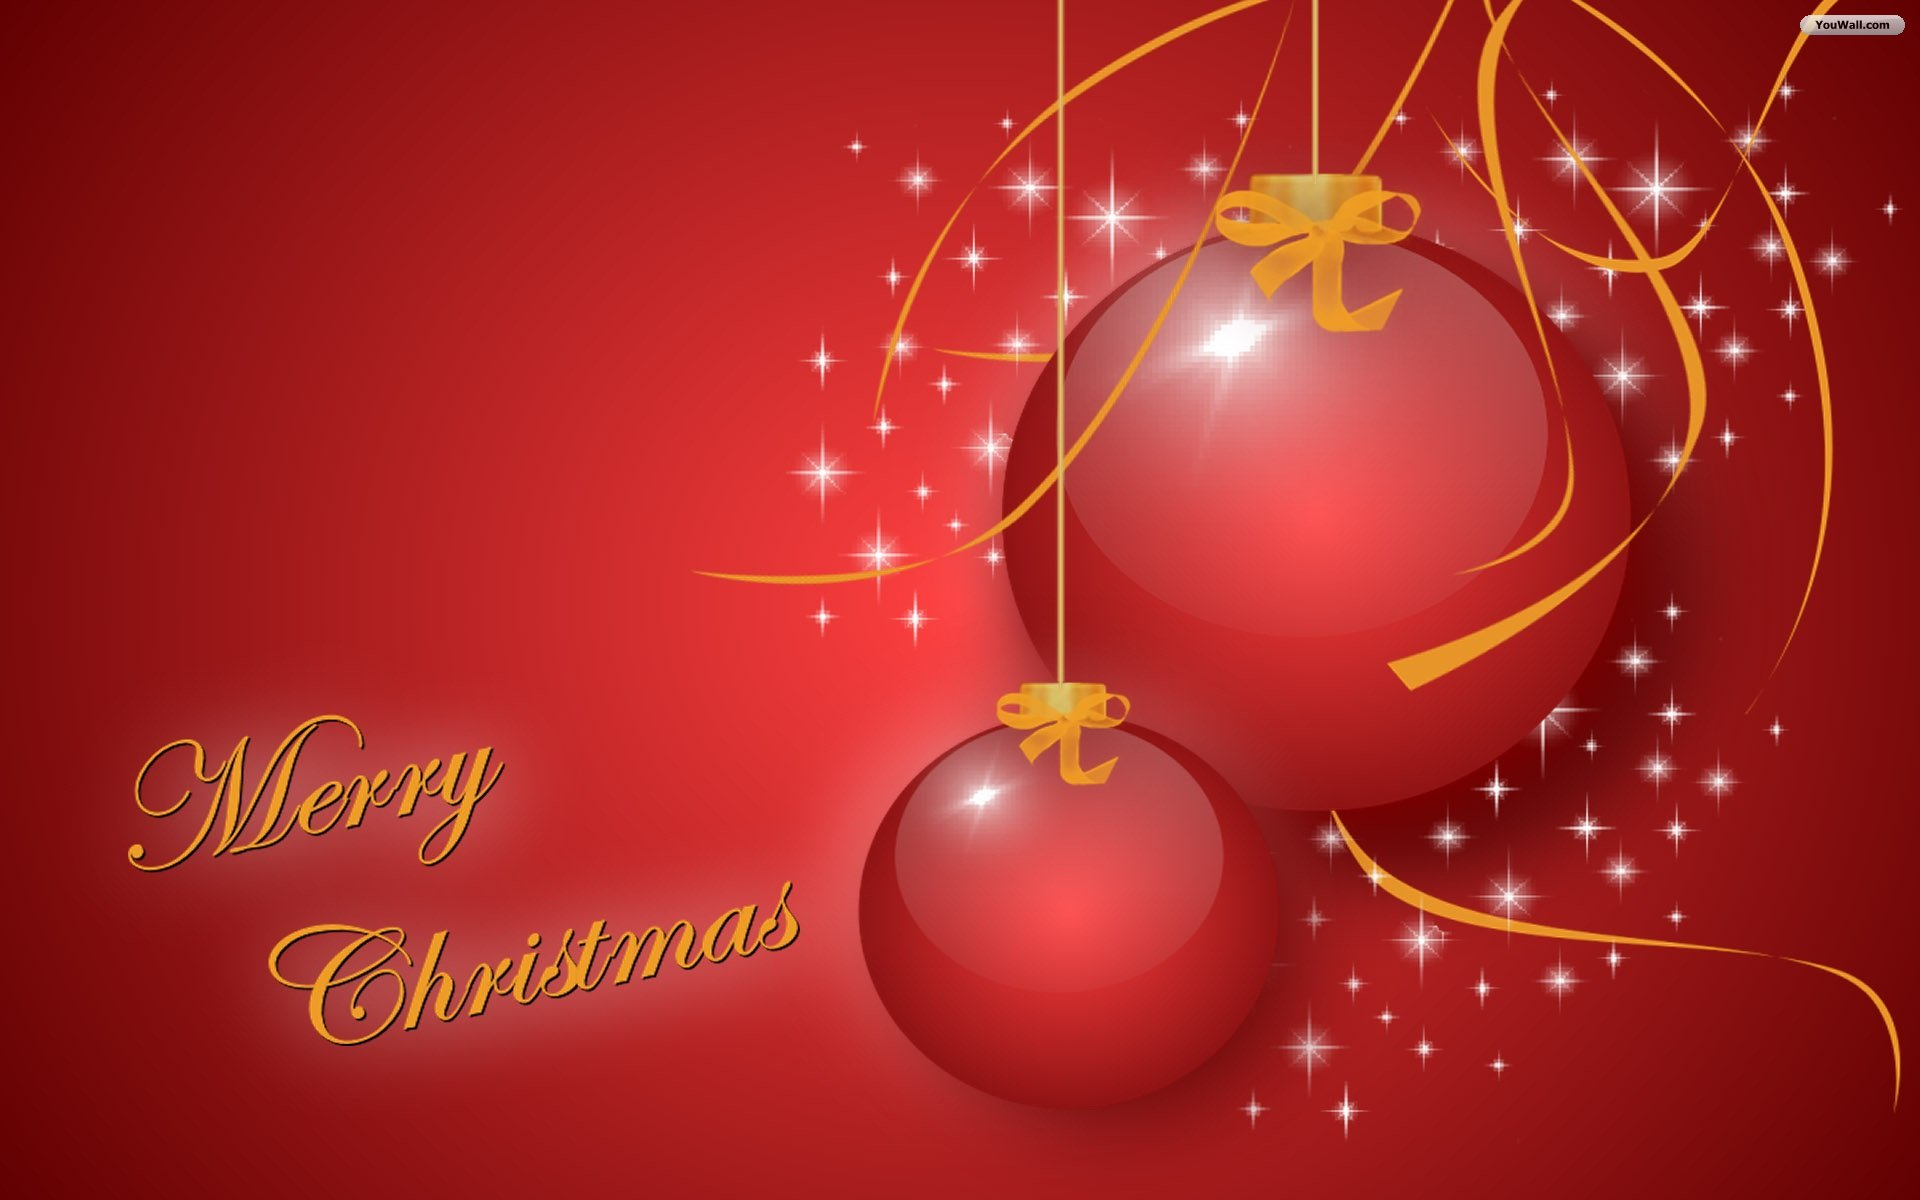 Merry Christmas 1920X1200 Wallpaper